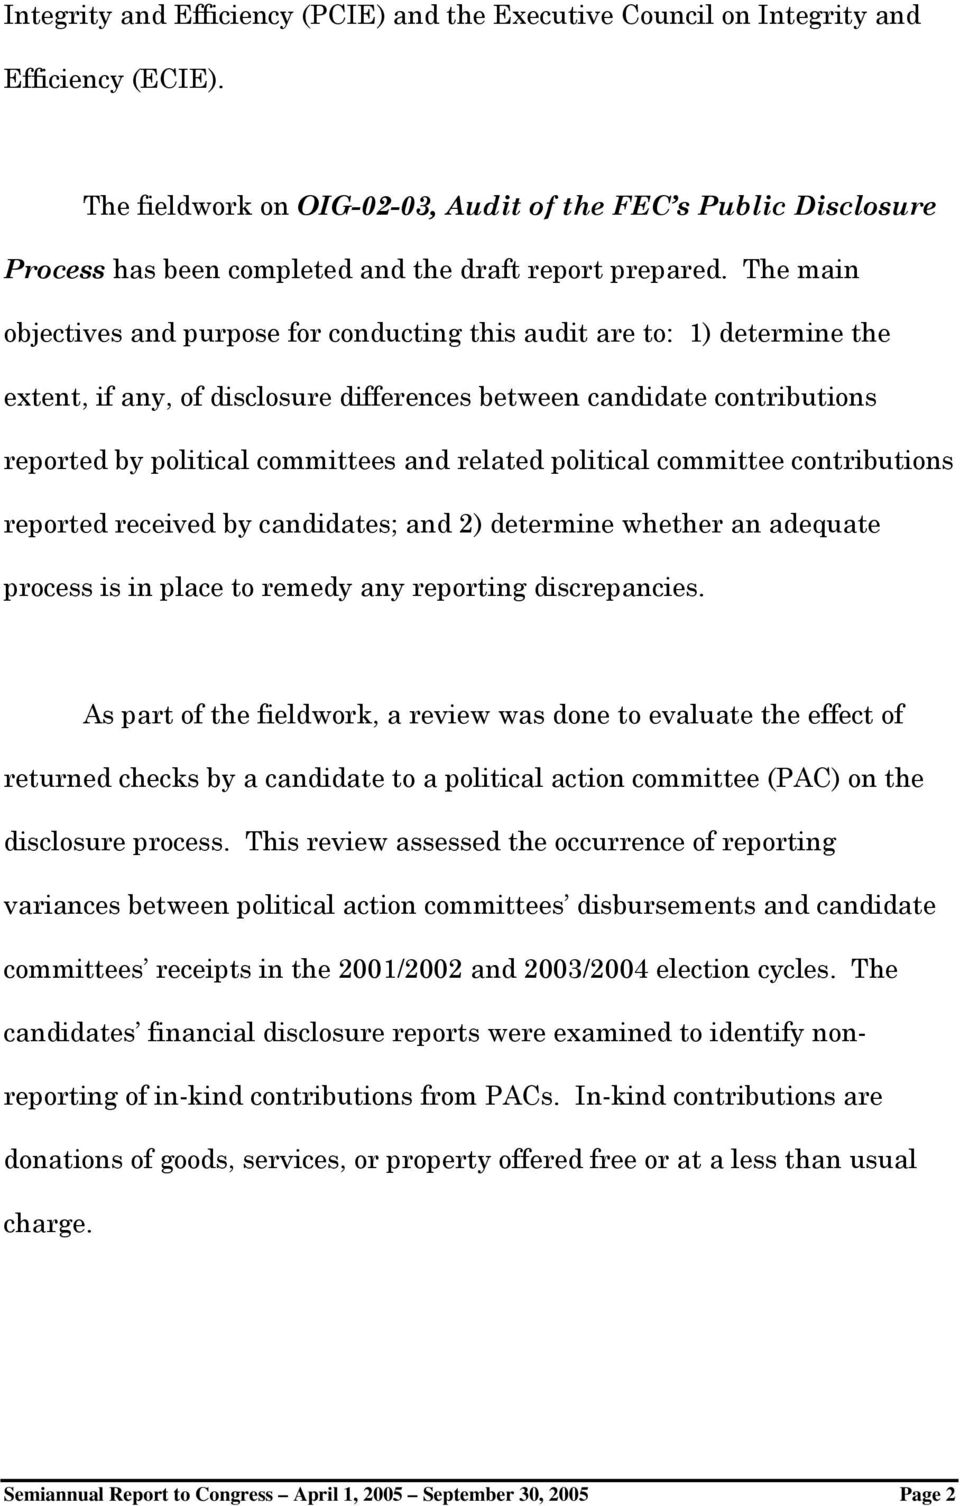 The main objectives and purpose for conducting this audit are to: 1) determine the extent, if any, of disclosure differences between candidate contributions reported by political committees and